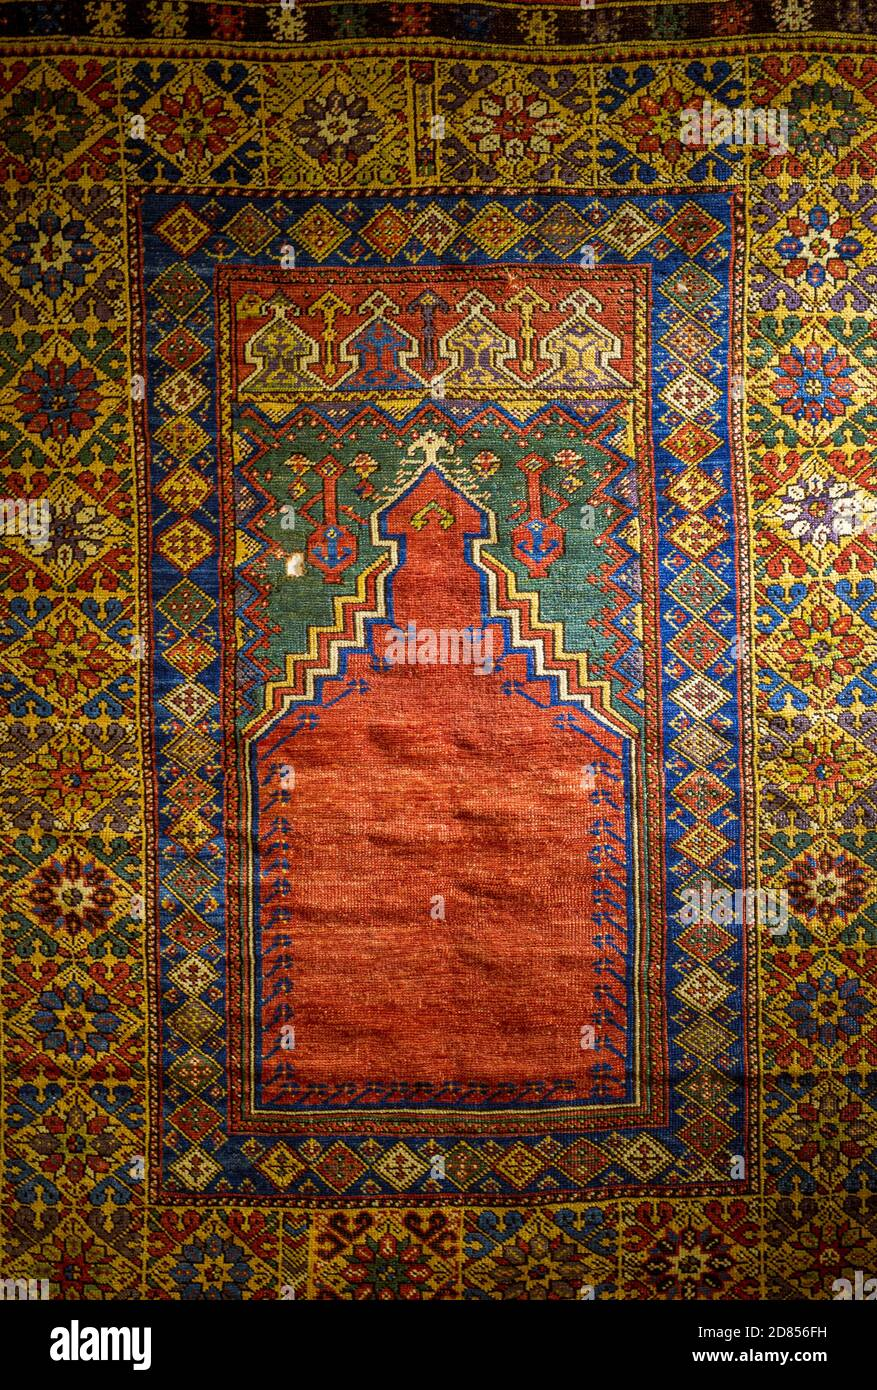 Ankara, Turkey; 08 October 2020: Closeup detail view of Anatolian carpet from ancient times Stock Photo